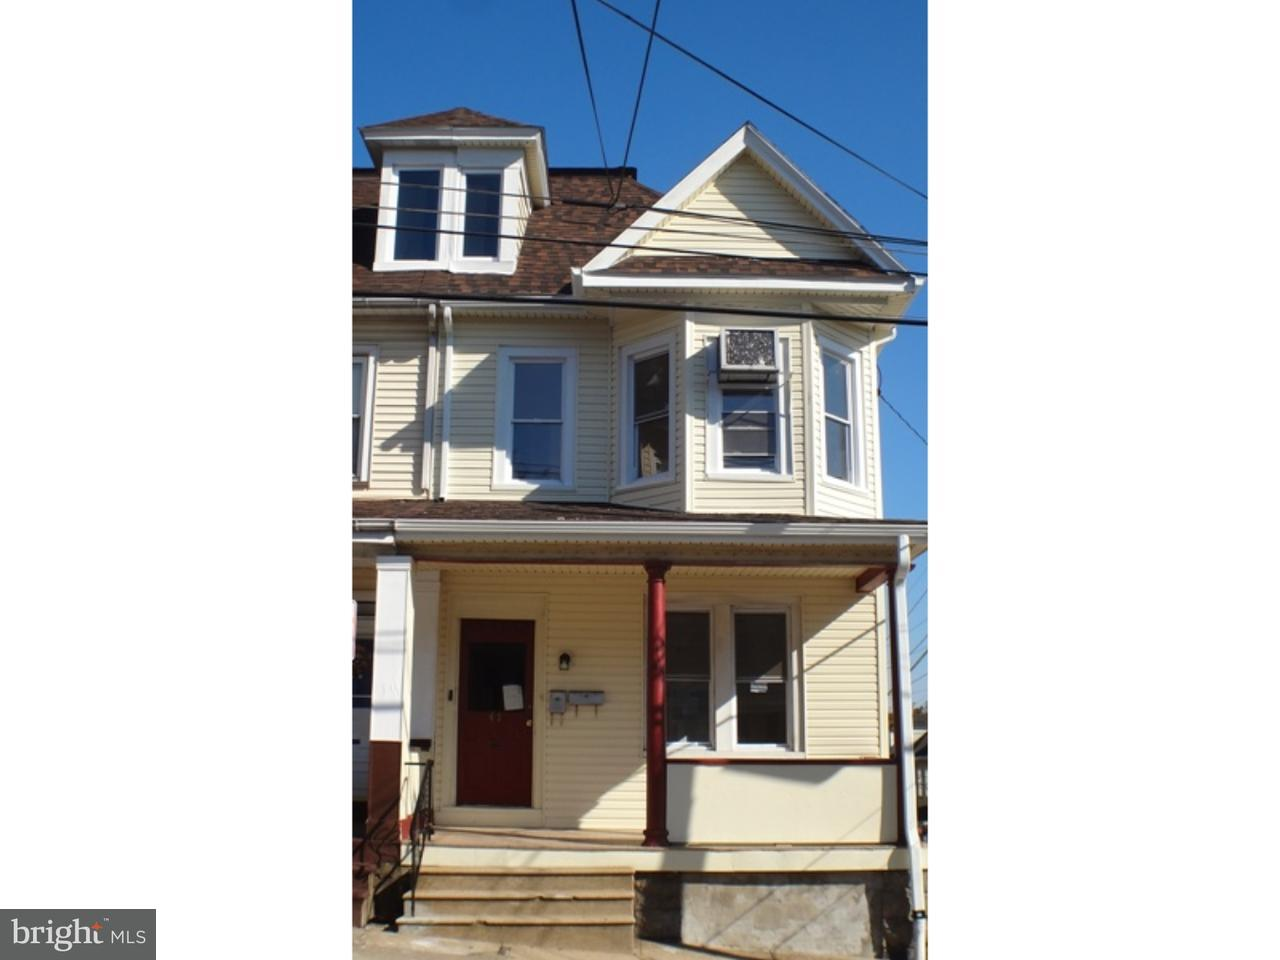 Single Family Home for Rent at 41 N 8TH ST ##1 Easton, Pennsylvania 18042 United States